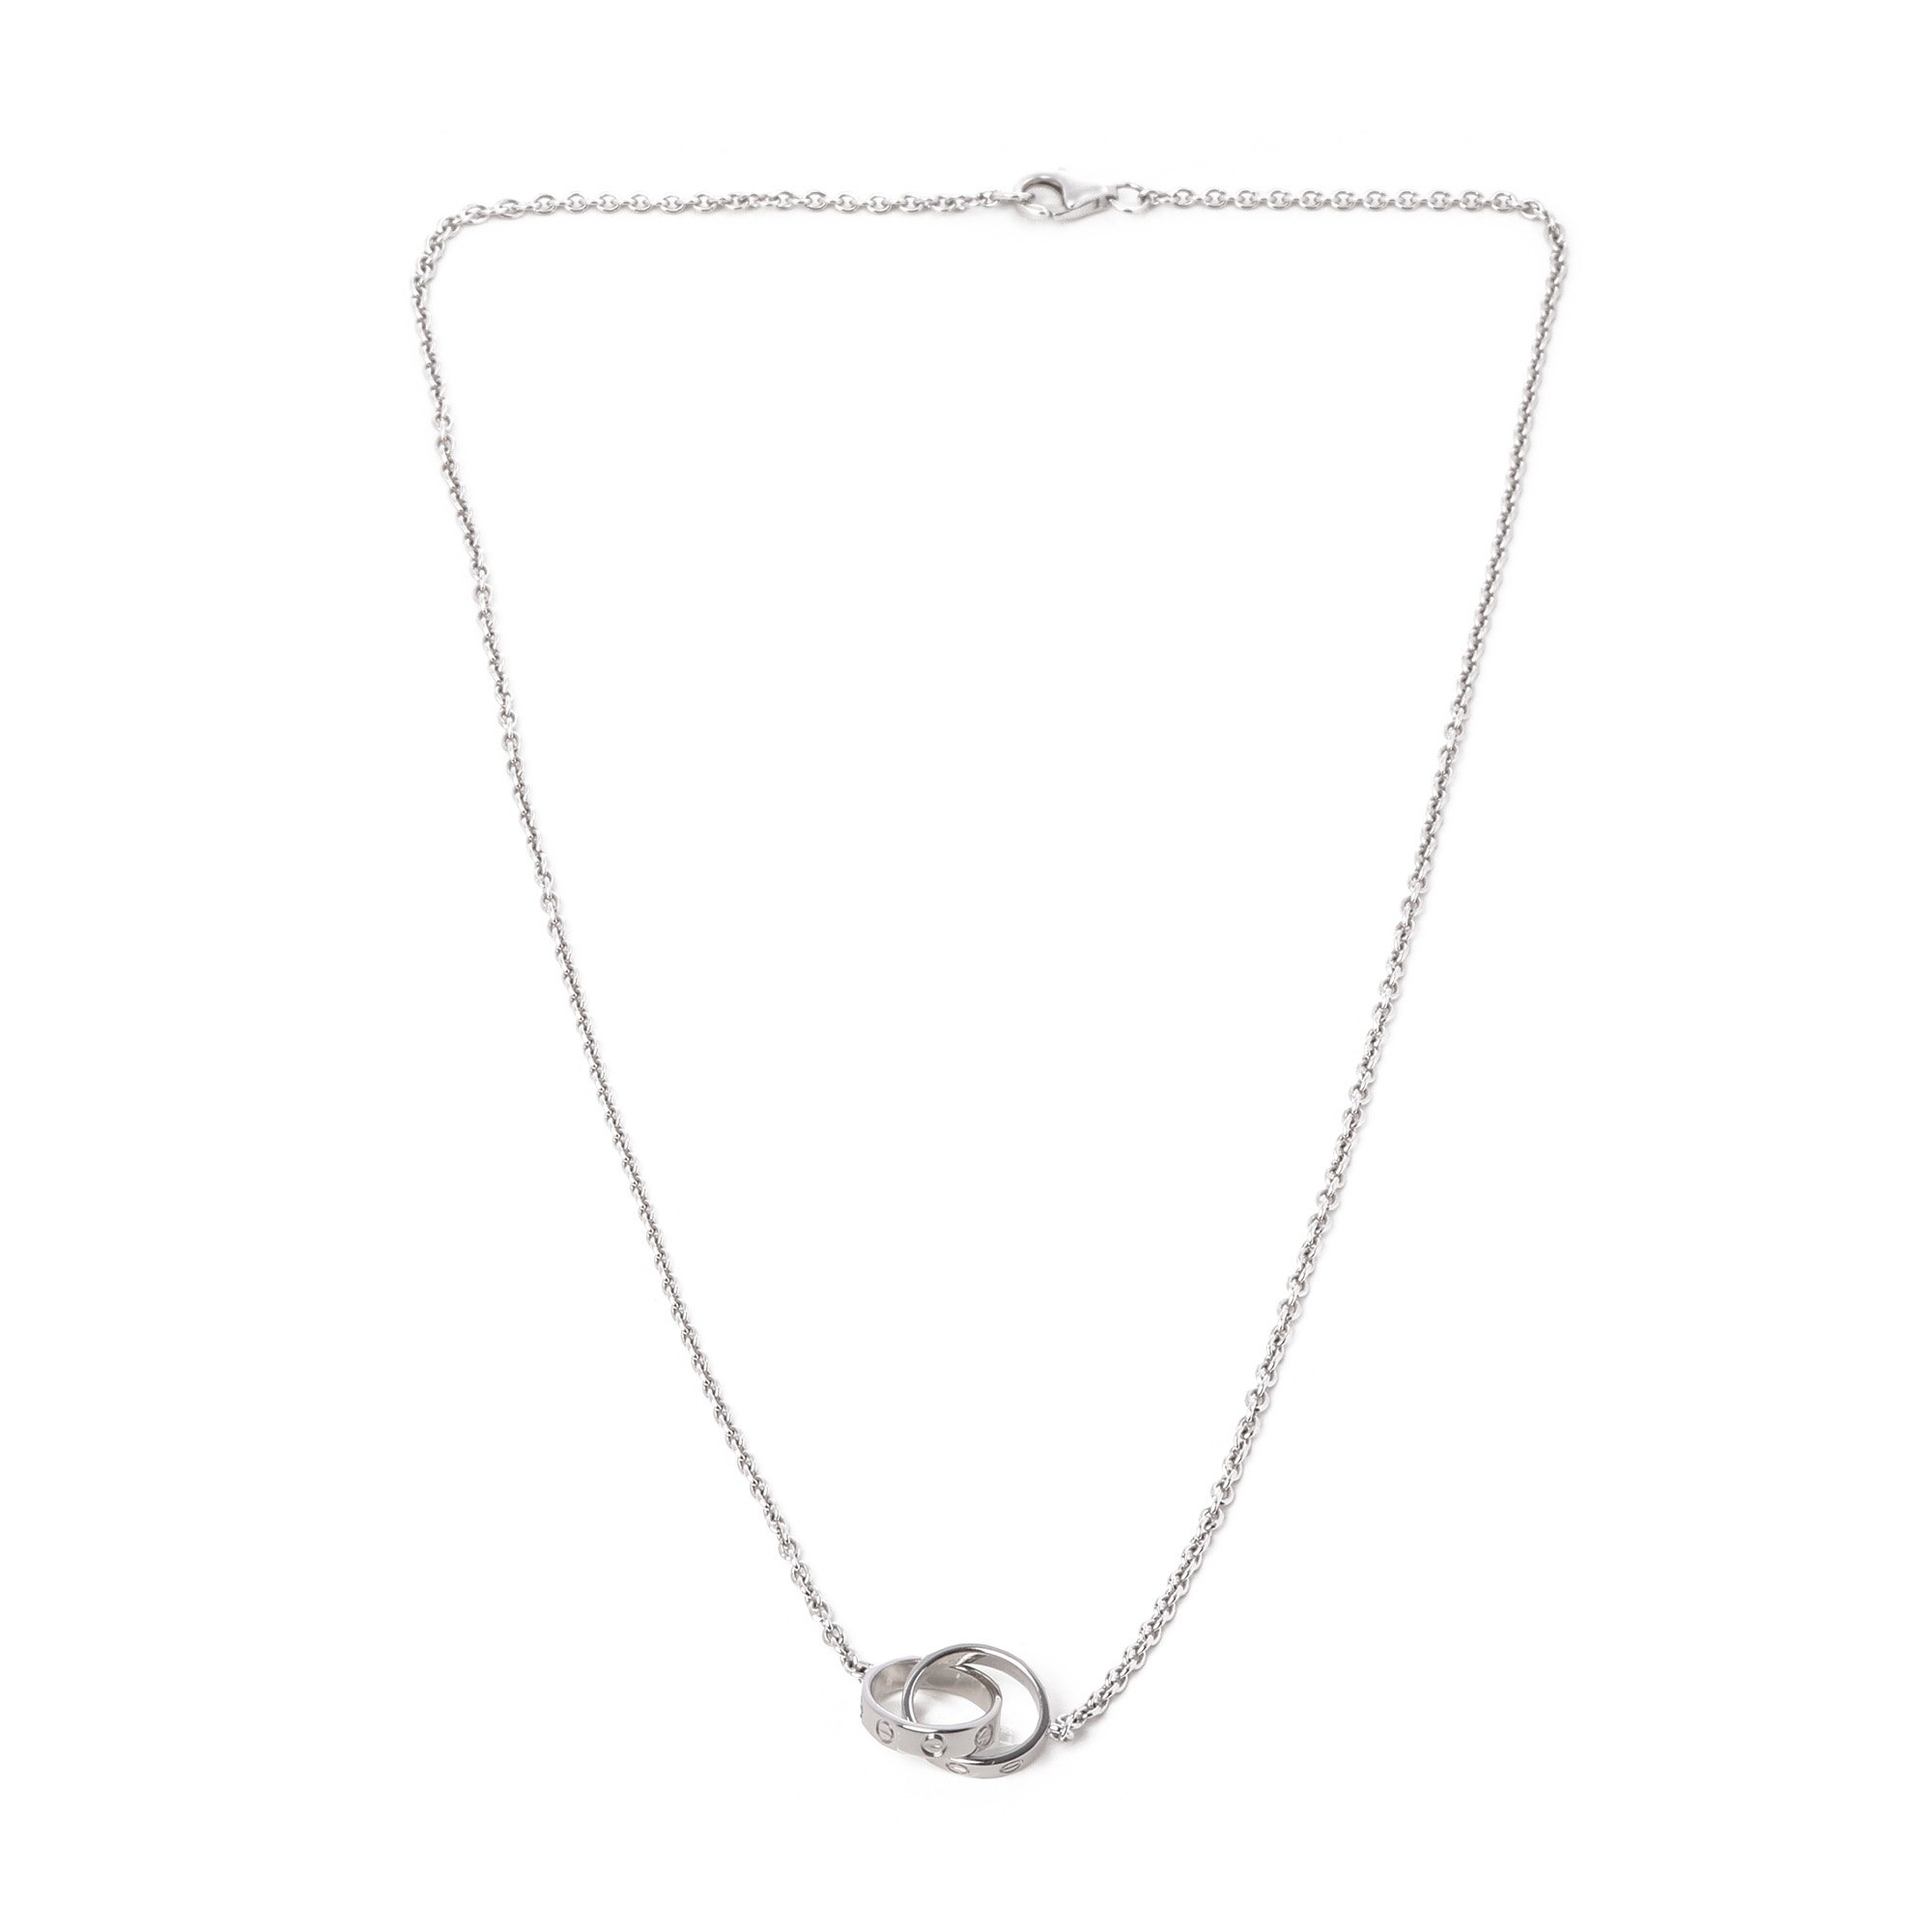 Cartier 18ct White Gold Necklace